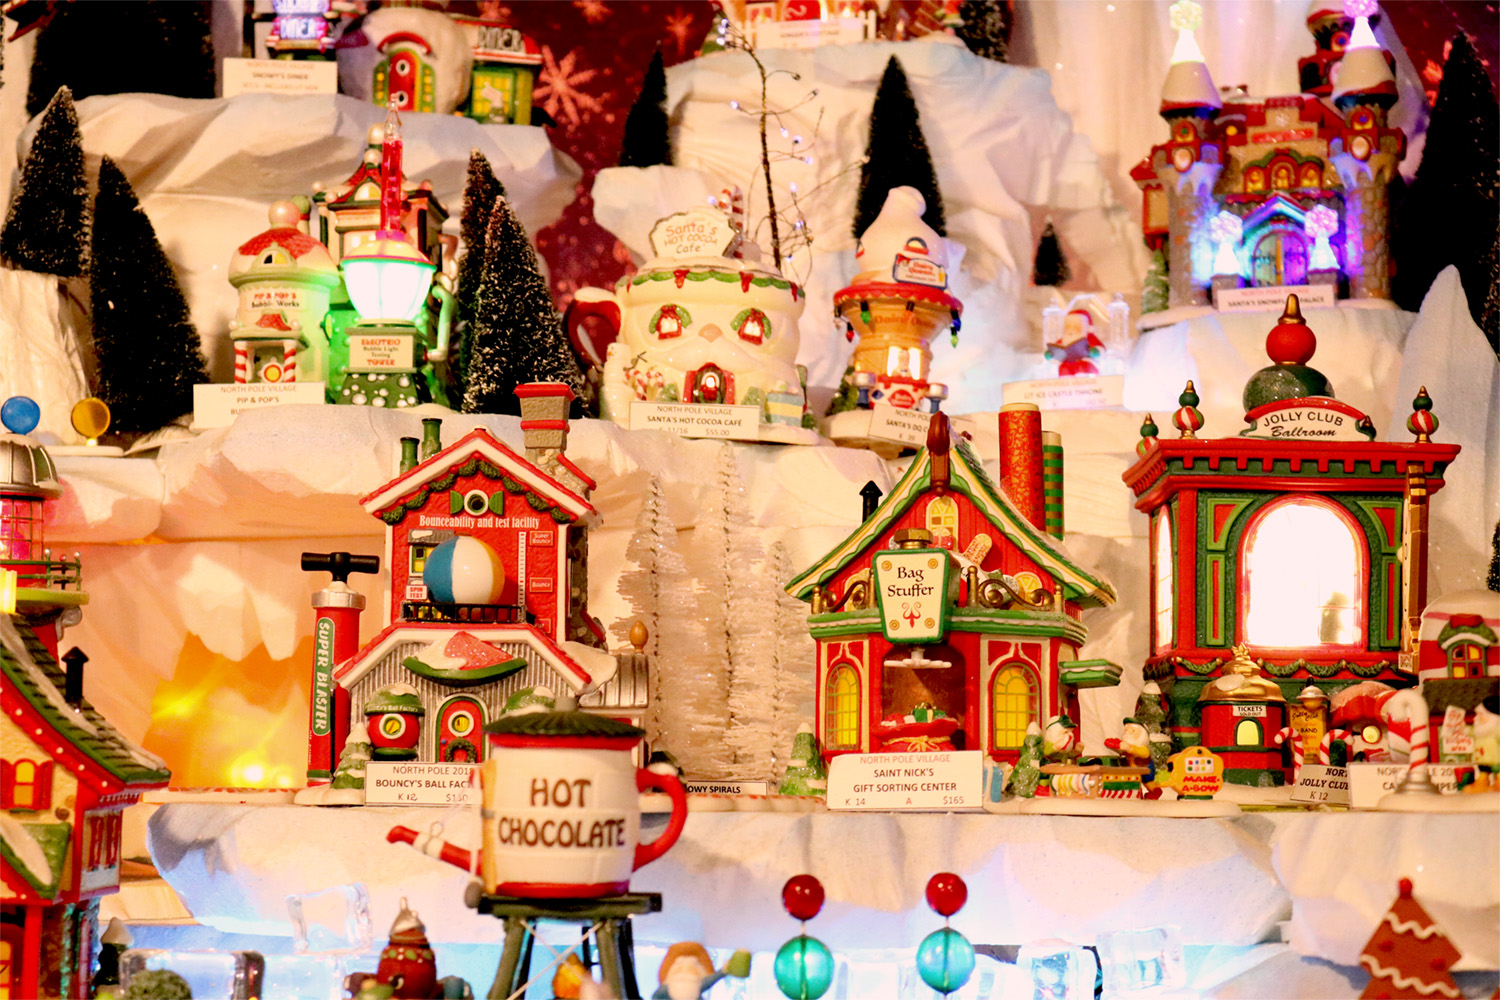 "Sick of holiday coverage? Bah humbug! Welcome to Kris Kringl in Leavenworth, where the holidays aren't just once a year - they're YEAR-ROUND. This little slice of Christmas heaven in{&nbsp;}the Bavarian Village is a one-stop-shop for all kinds of gifts, holiday home decor and{&nbsp;}collectibles. Learn more{&nbsp;}<a  href=""https://kriskringl.com/"" target=""_blank"" title=""https://kriskringl.com/"">online</a>. (Image:{&nbsp;}Kota Soule){&nbsp;}"